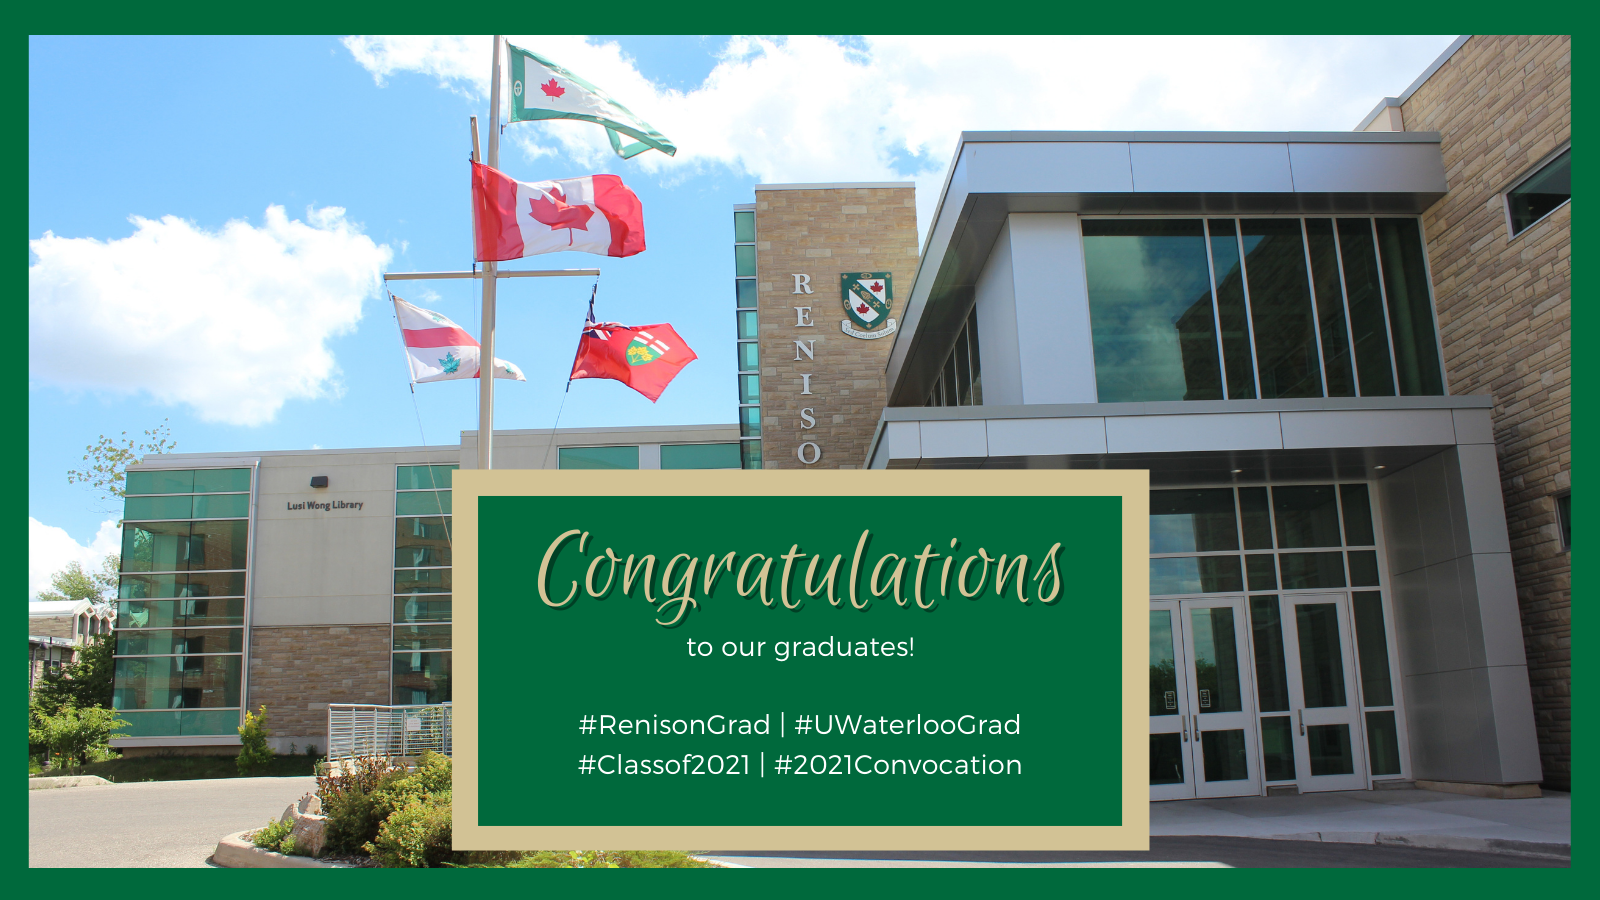 Image of Renison building entrance, with text: Congratulations to our graduates!